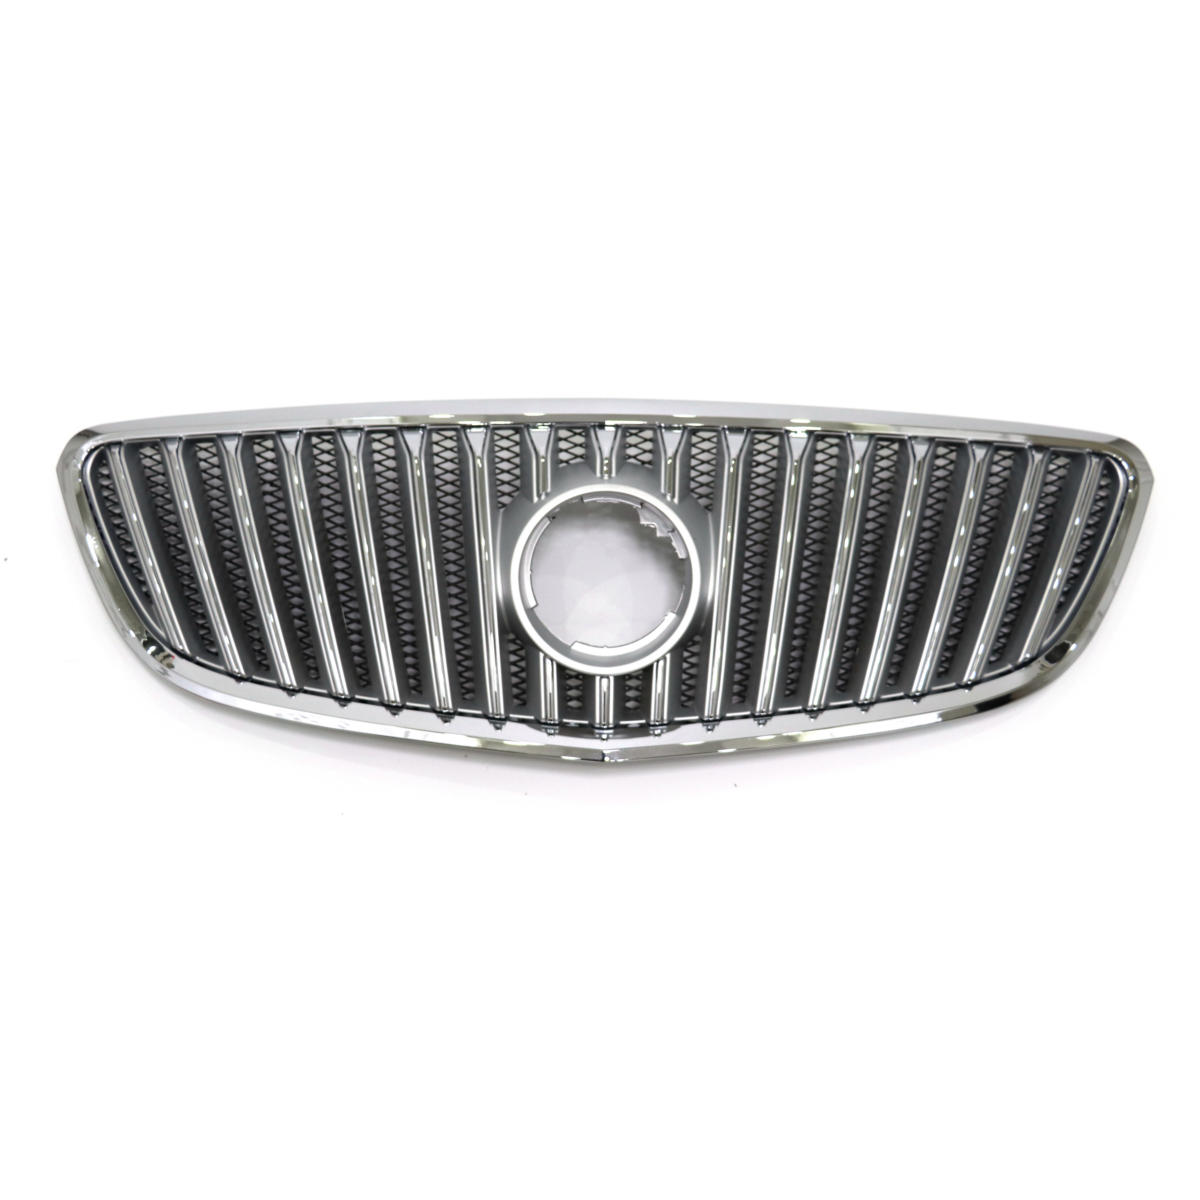 Front Bumper Upper Grille Grill Assembly Insert For Buick LaCrosse 2010-2013